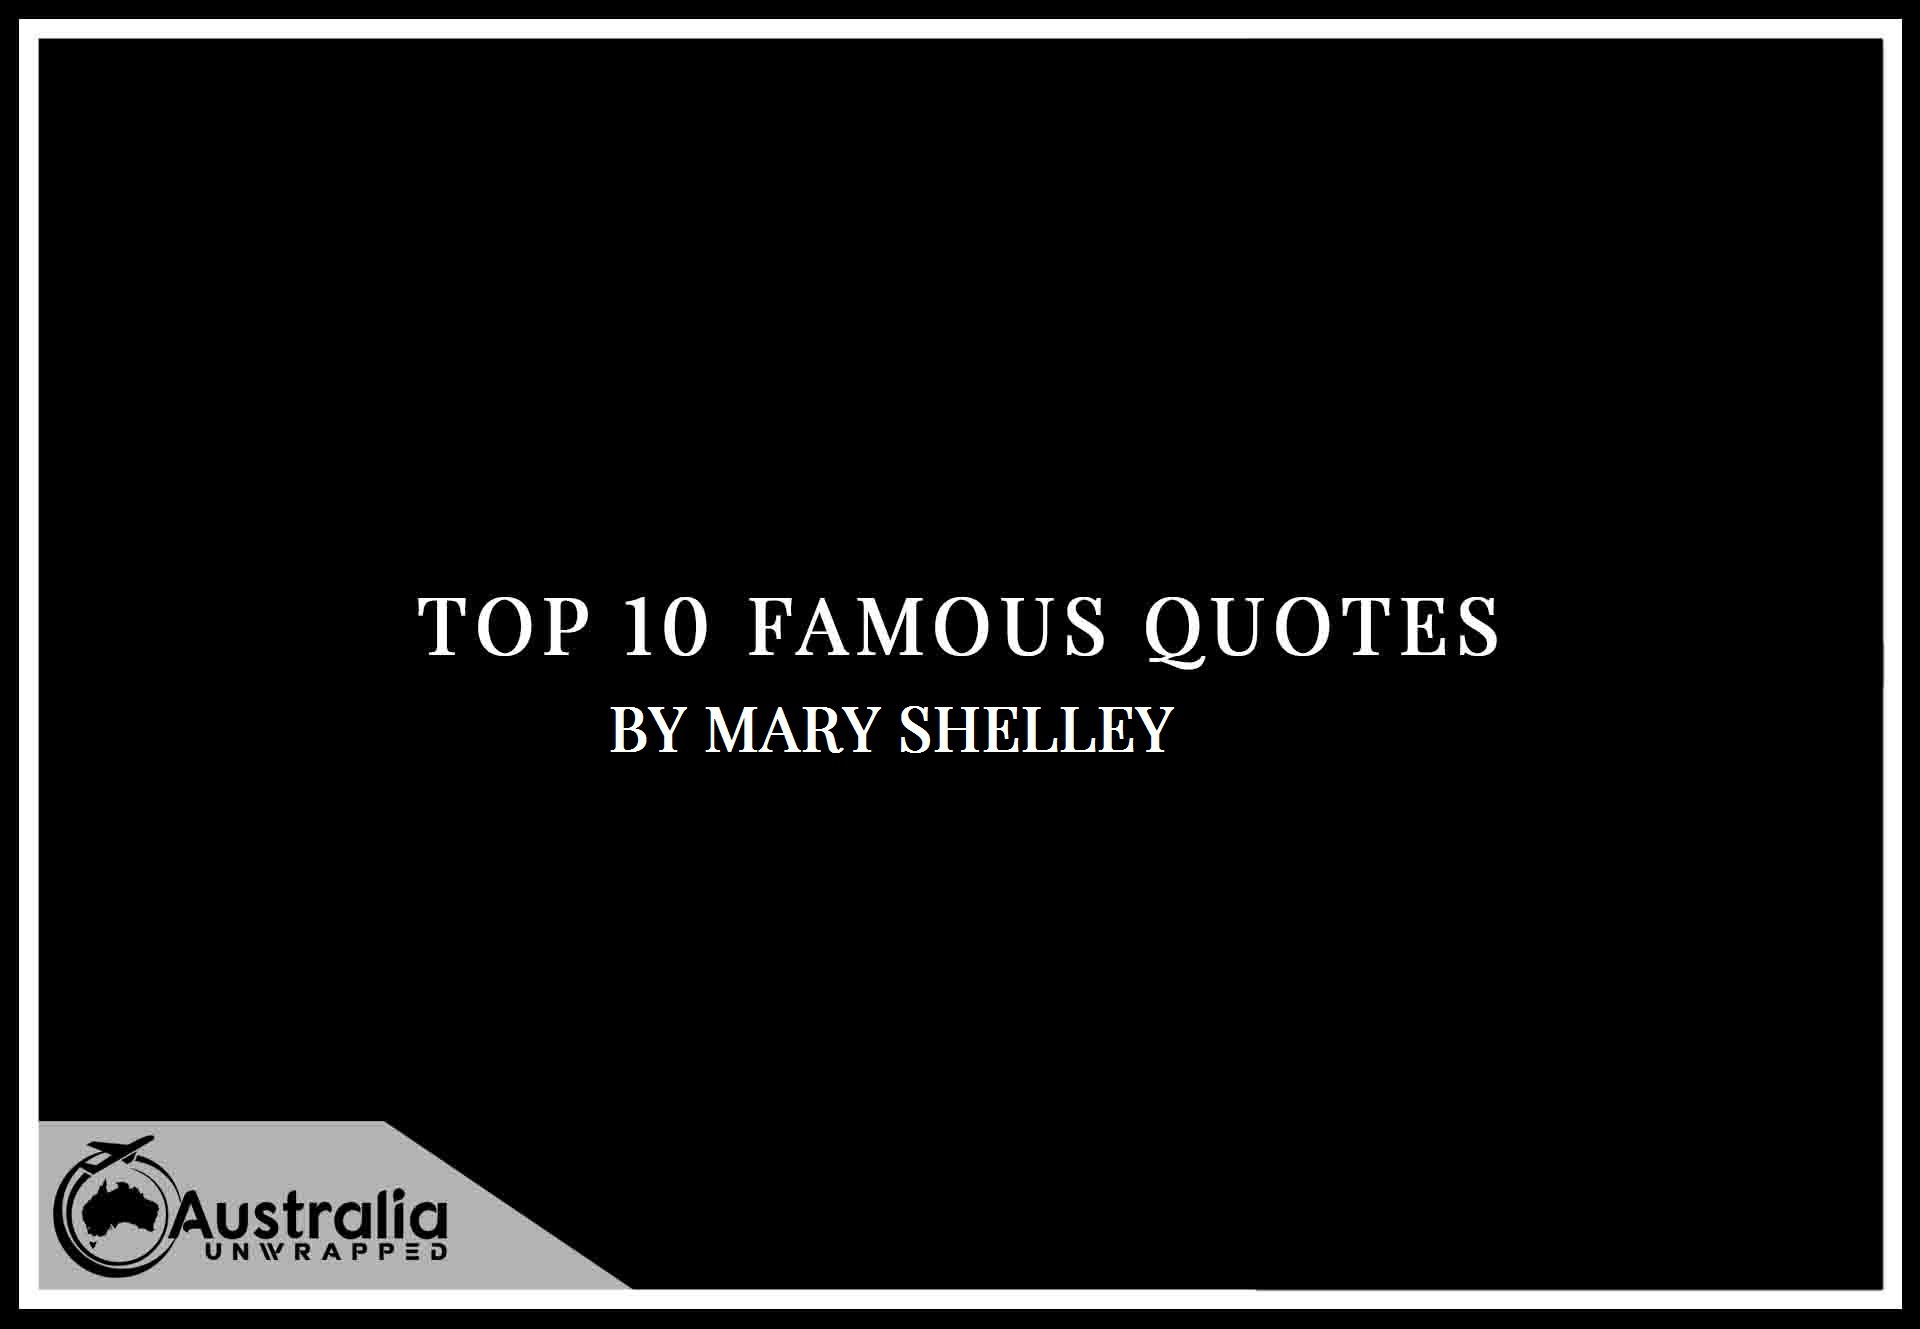 Mary Shelley's Top 10 Popular and Famous Quotes